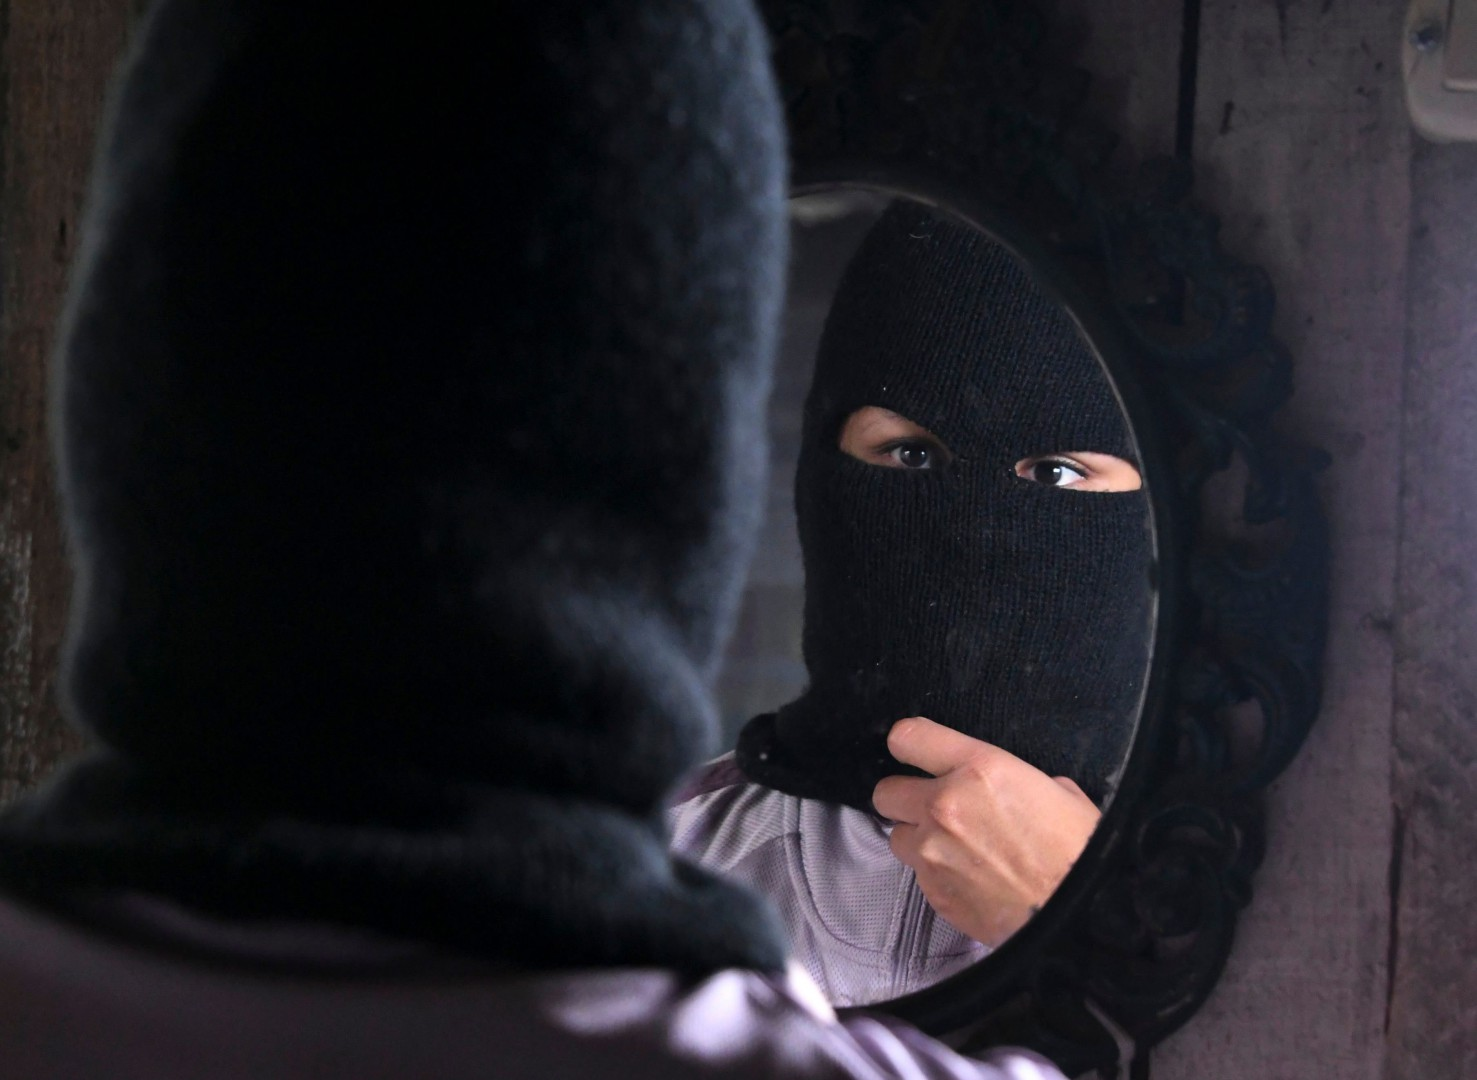 A person wearing a balaclava offers an interview to AFP in the poor neighbourhood of Nueva Capital, on the outskirts of Tegucigalpa, on May 13, 2018. Missionaries from the United States who met three Honduran ex-members of the Mara Salvatrucha (MS-13) gang, told AFP that they wanted to hear about the causes of migration to the US because they are critical of President Donald Trump's anti-immigrant policies. According to the ex-gang members, who aspired to a better world, no one is in a gang because they want to but for necessity and that young people emigrate because of family disintegration, lack of employment, deficient health and education services and, in some cases, fleeing from gang recruitments. / AFP PHOTO / Orlando SIERRA